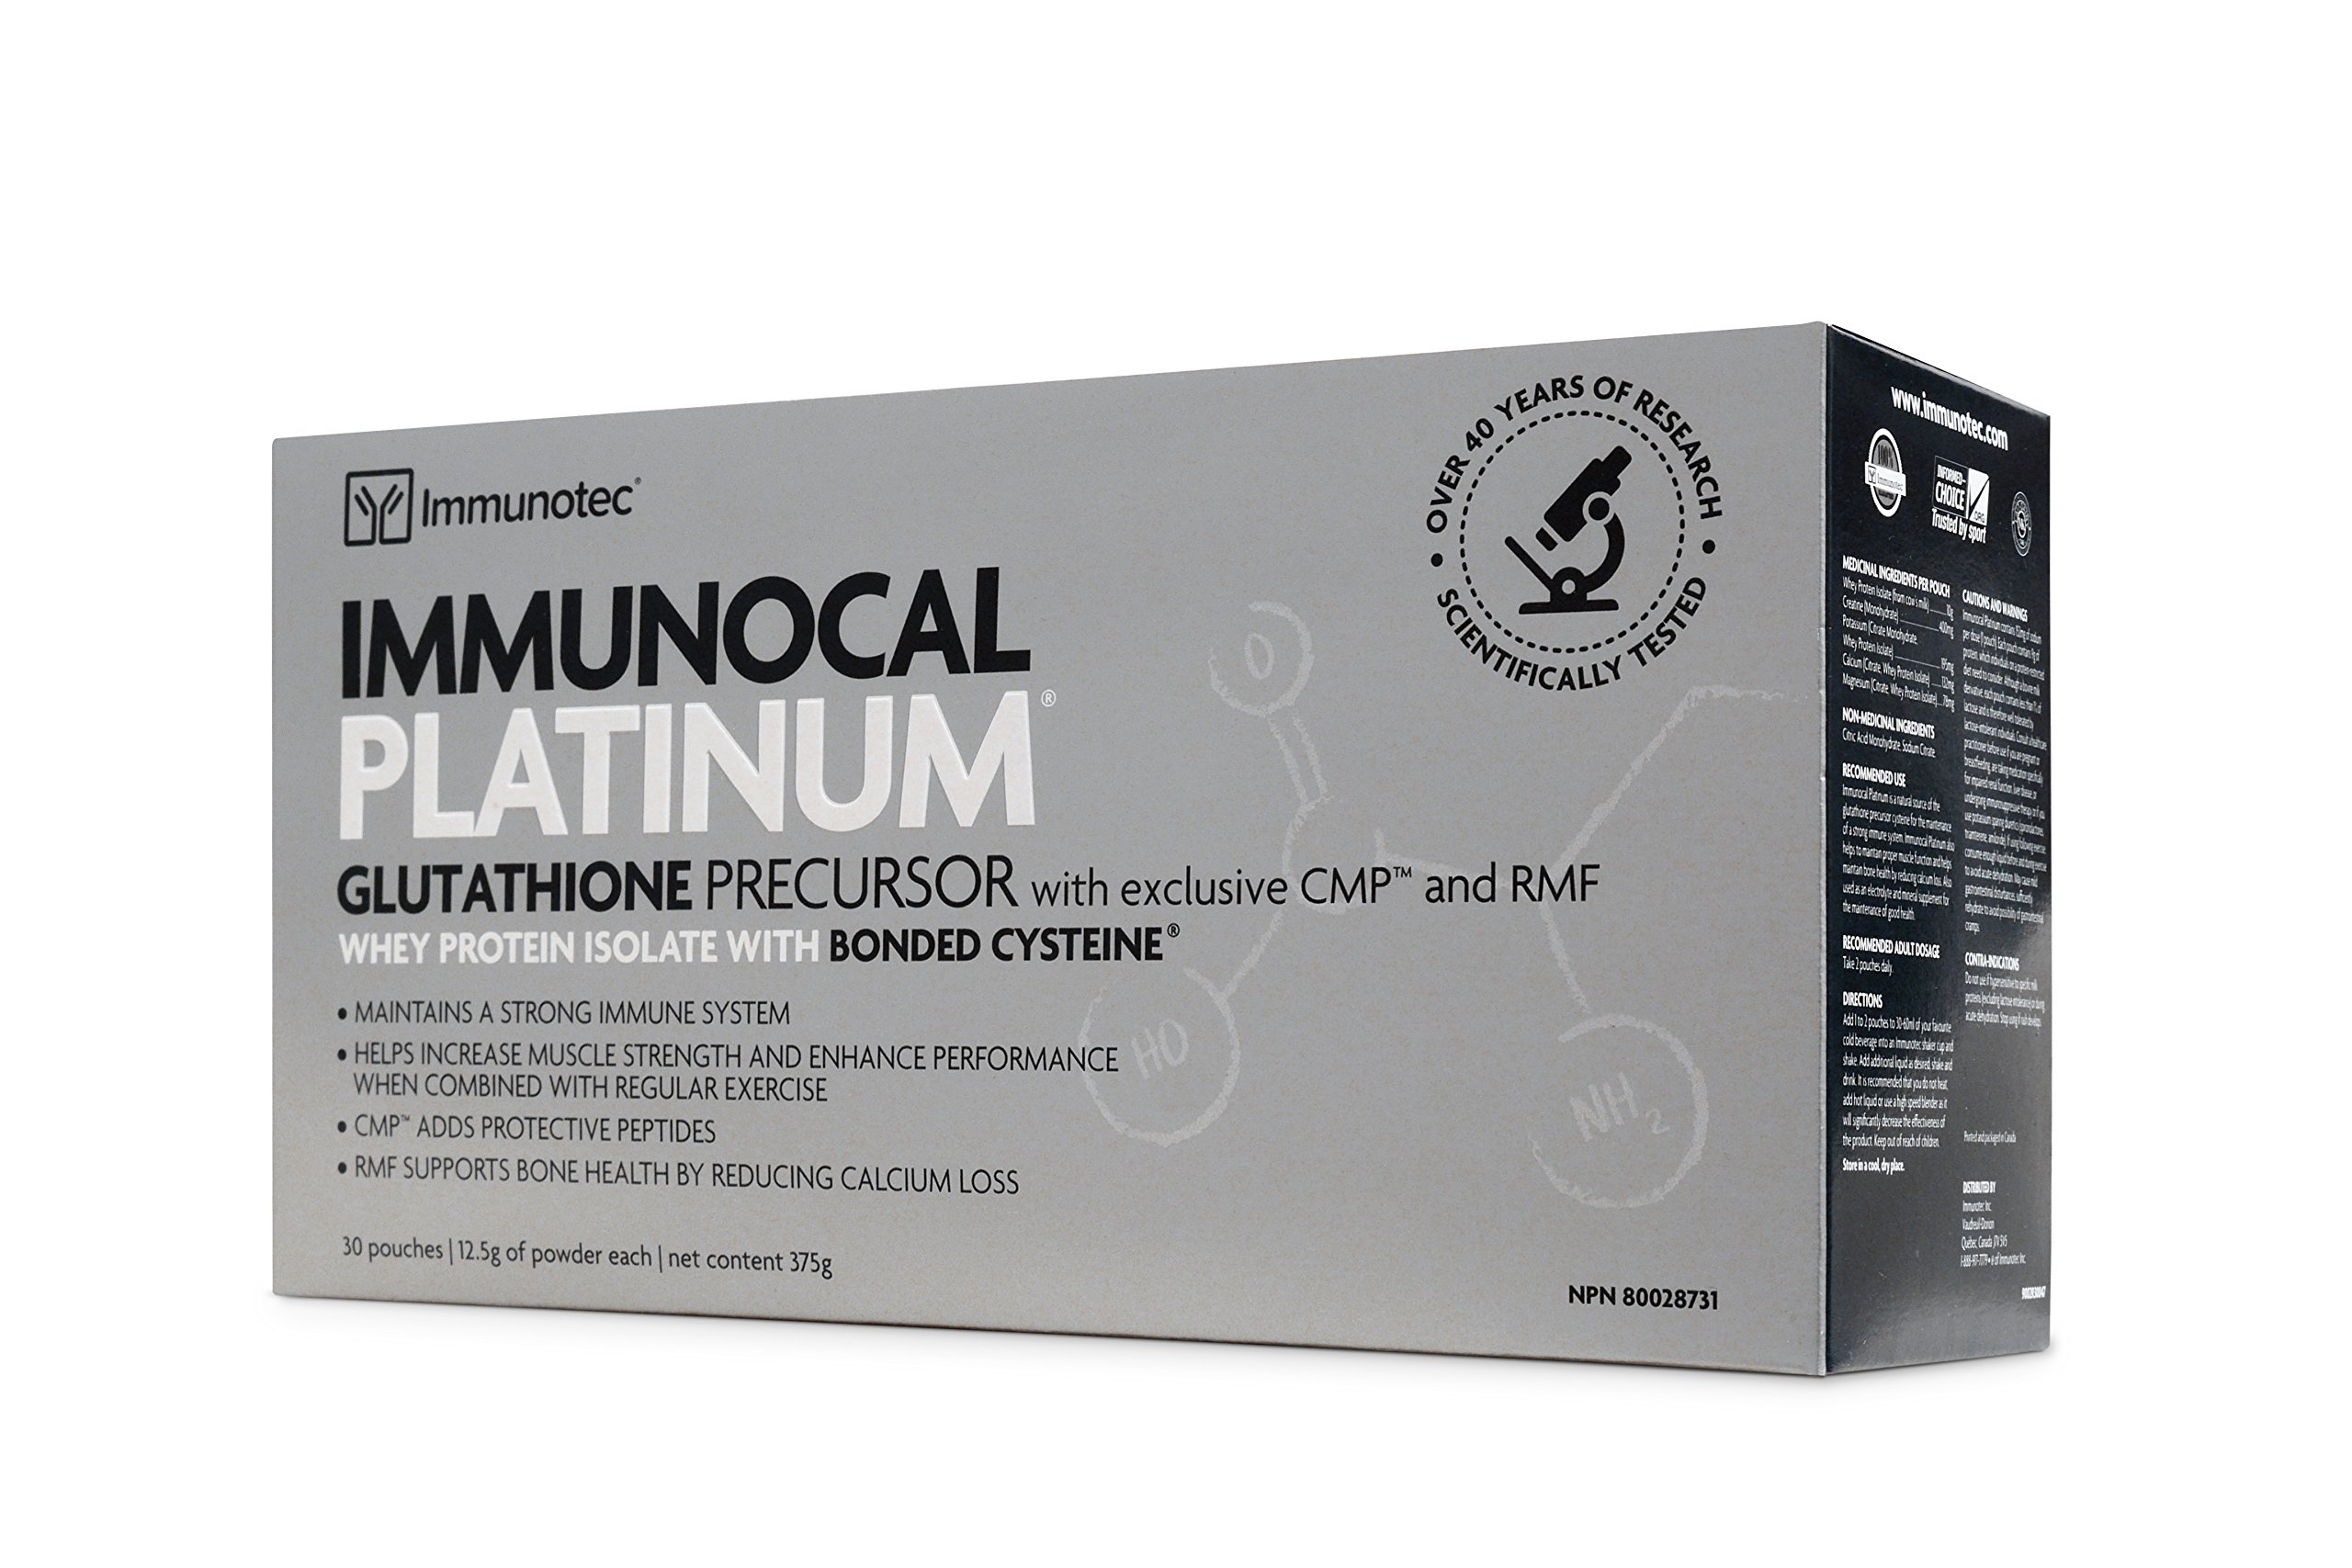 HMS-90 Immunocal Platinum (30packs) HMS 90 Brand: Immunocal, 0.44 oz